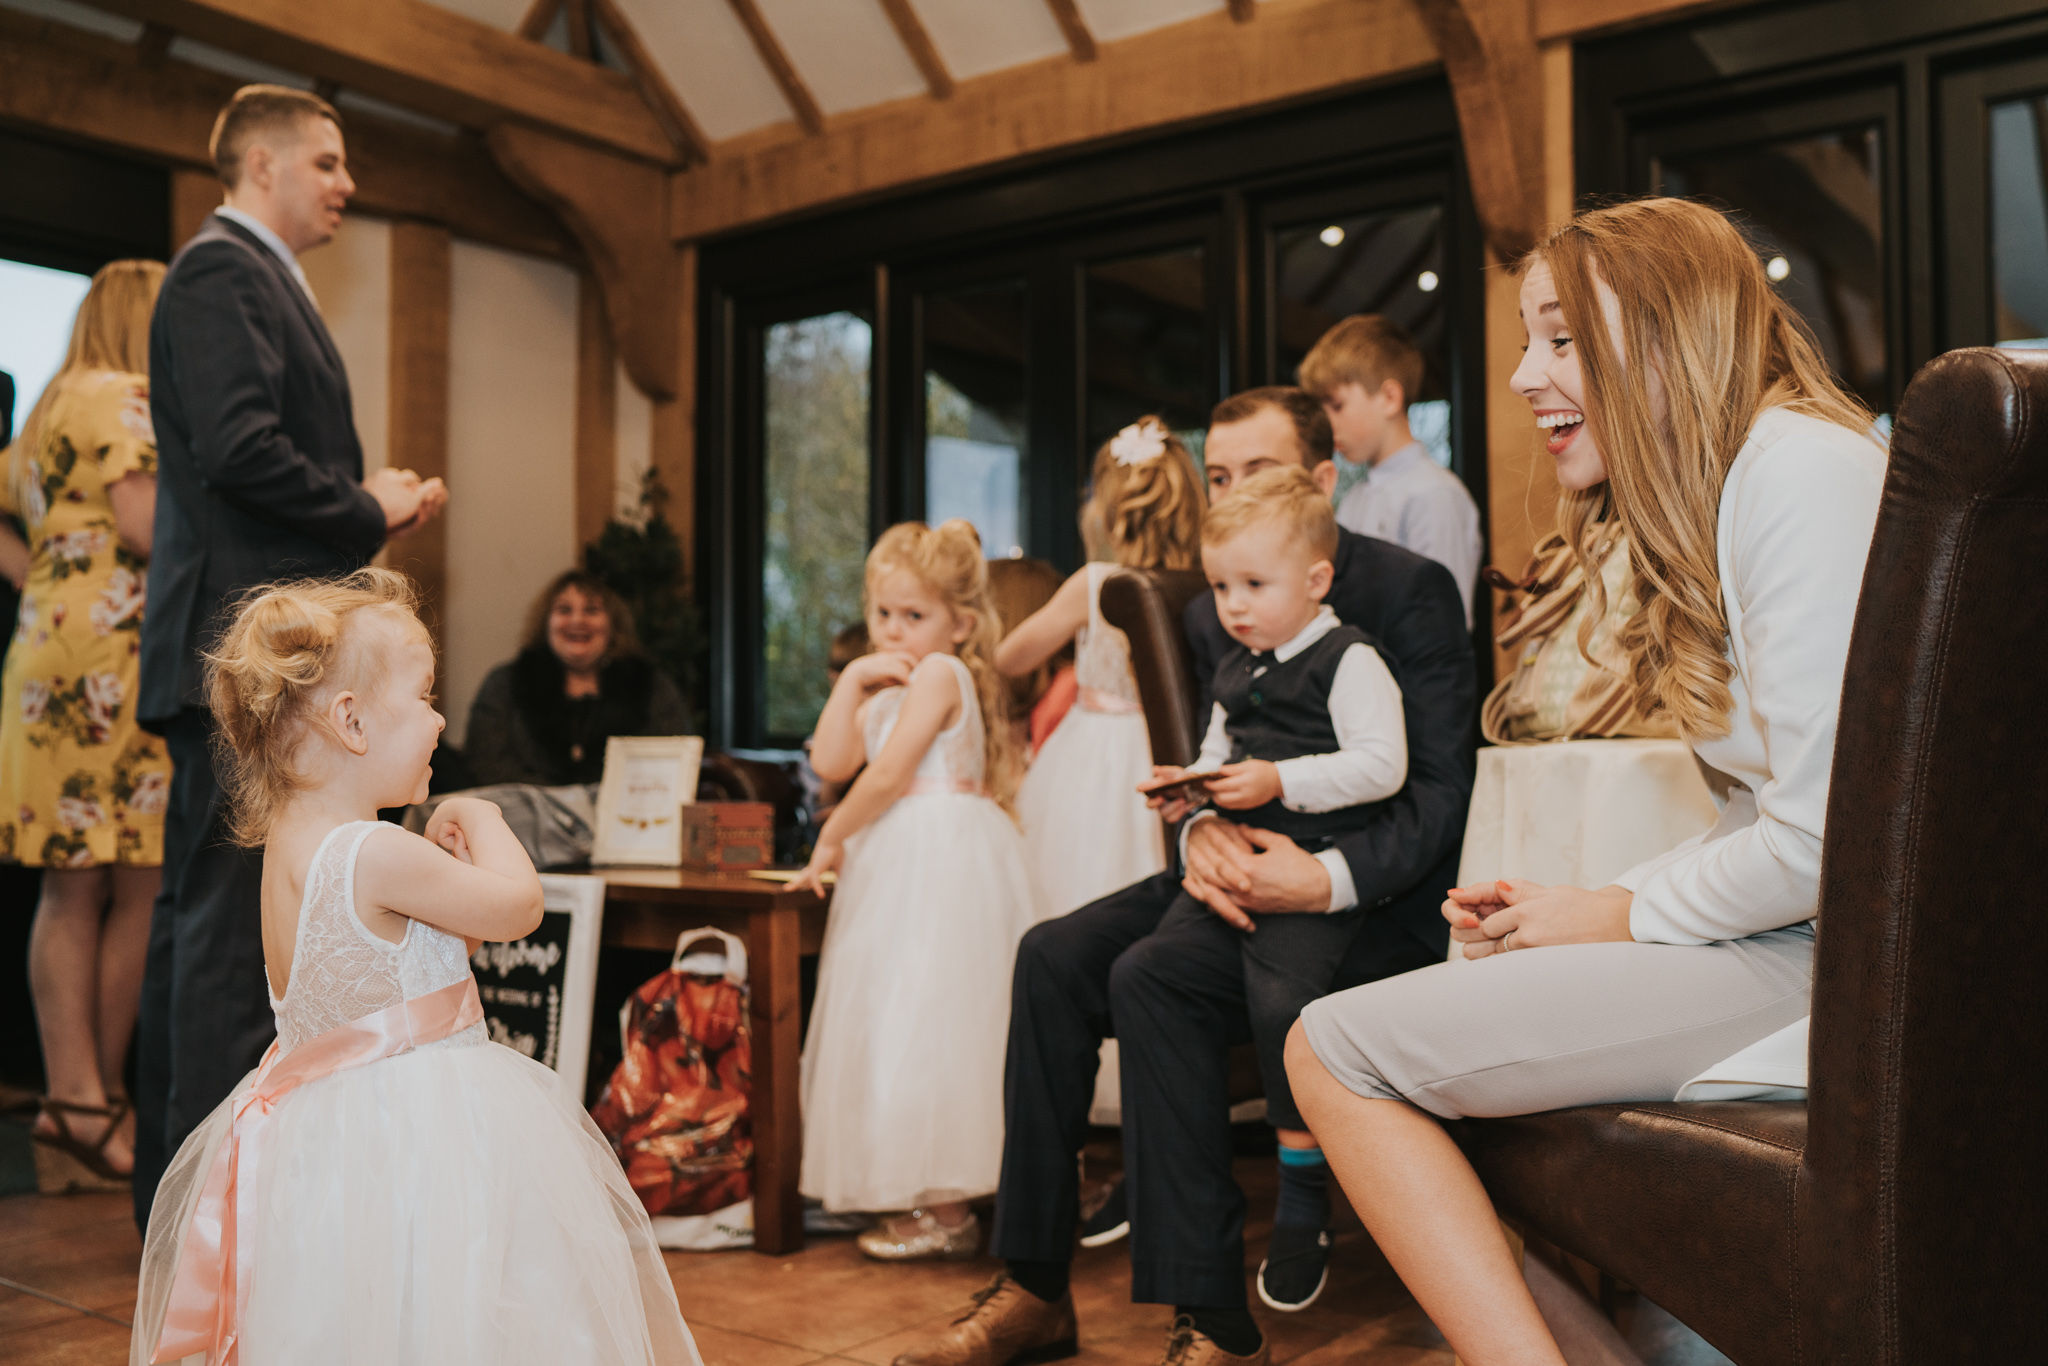 rhia-james-rustic-crabbs-barn-vintage-50s-retro-wedding-grace-elizabeth-colchester-essex-alternative-relaxed-wedding-family-photography-devon-suffolk-norfolk-essex (57 of 138).jpg